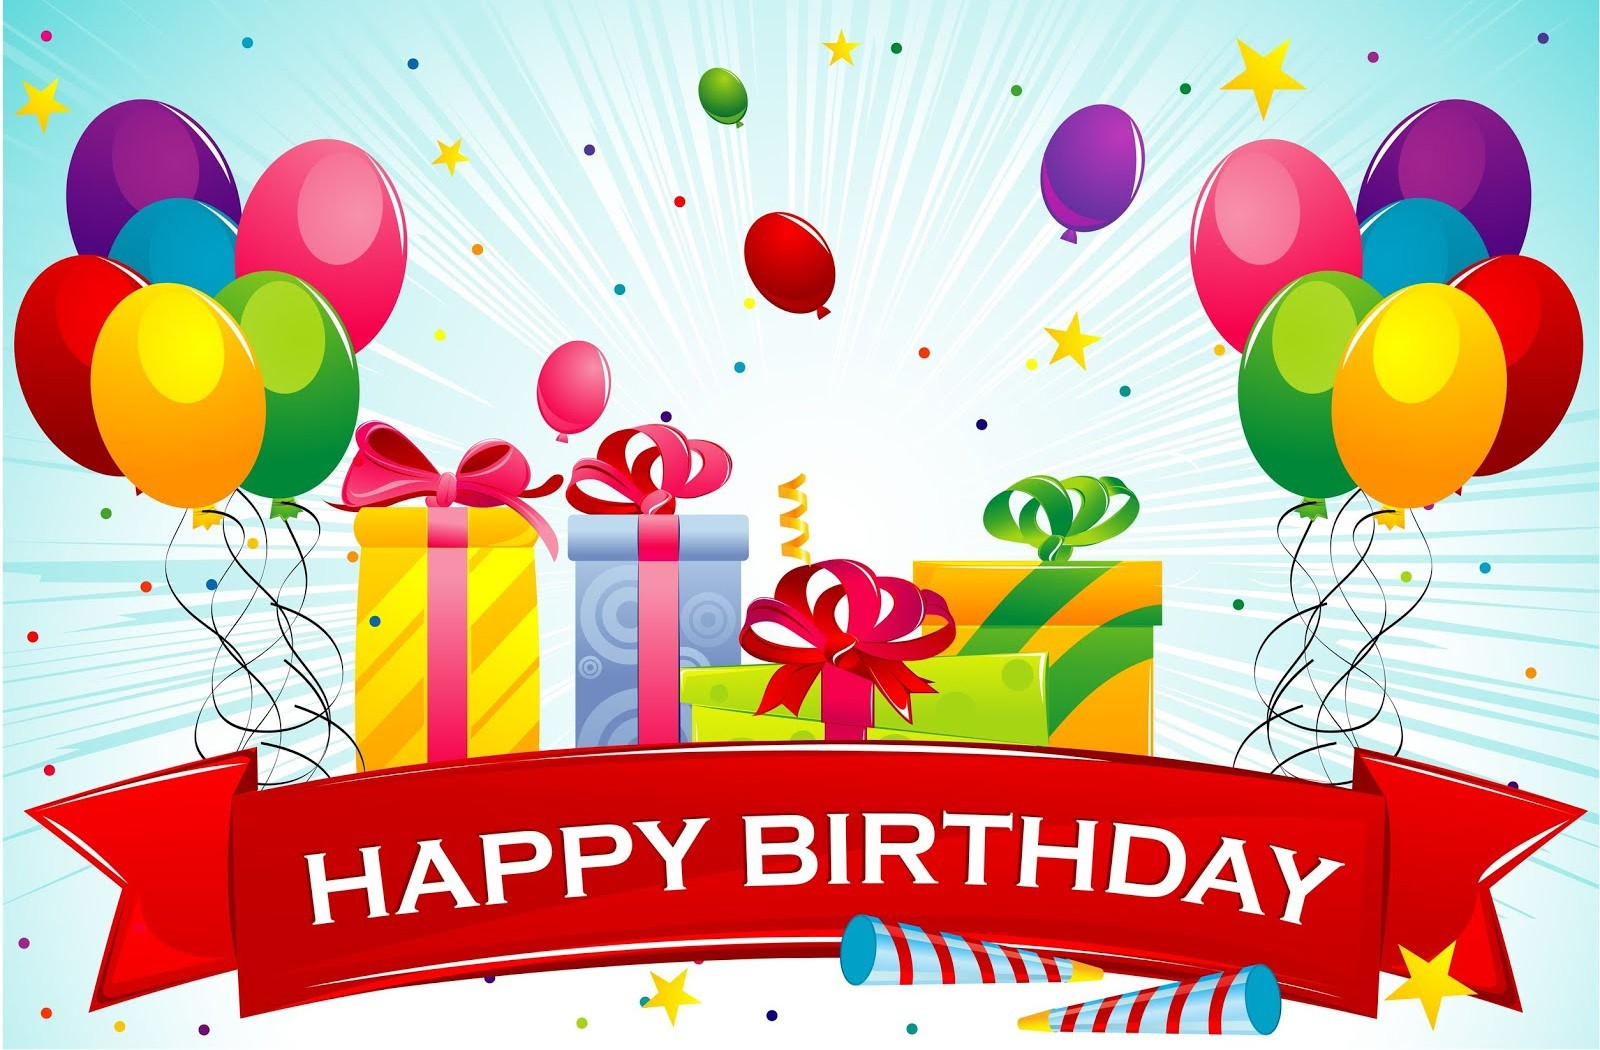 happy birthday happy birthday to you ; Happy-Birthday-to-You-Gift-Party